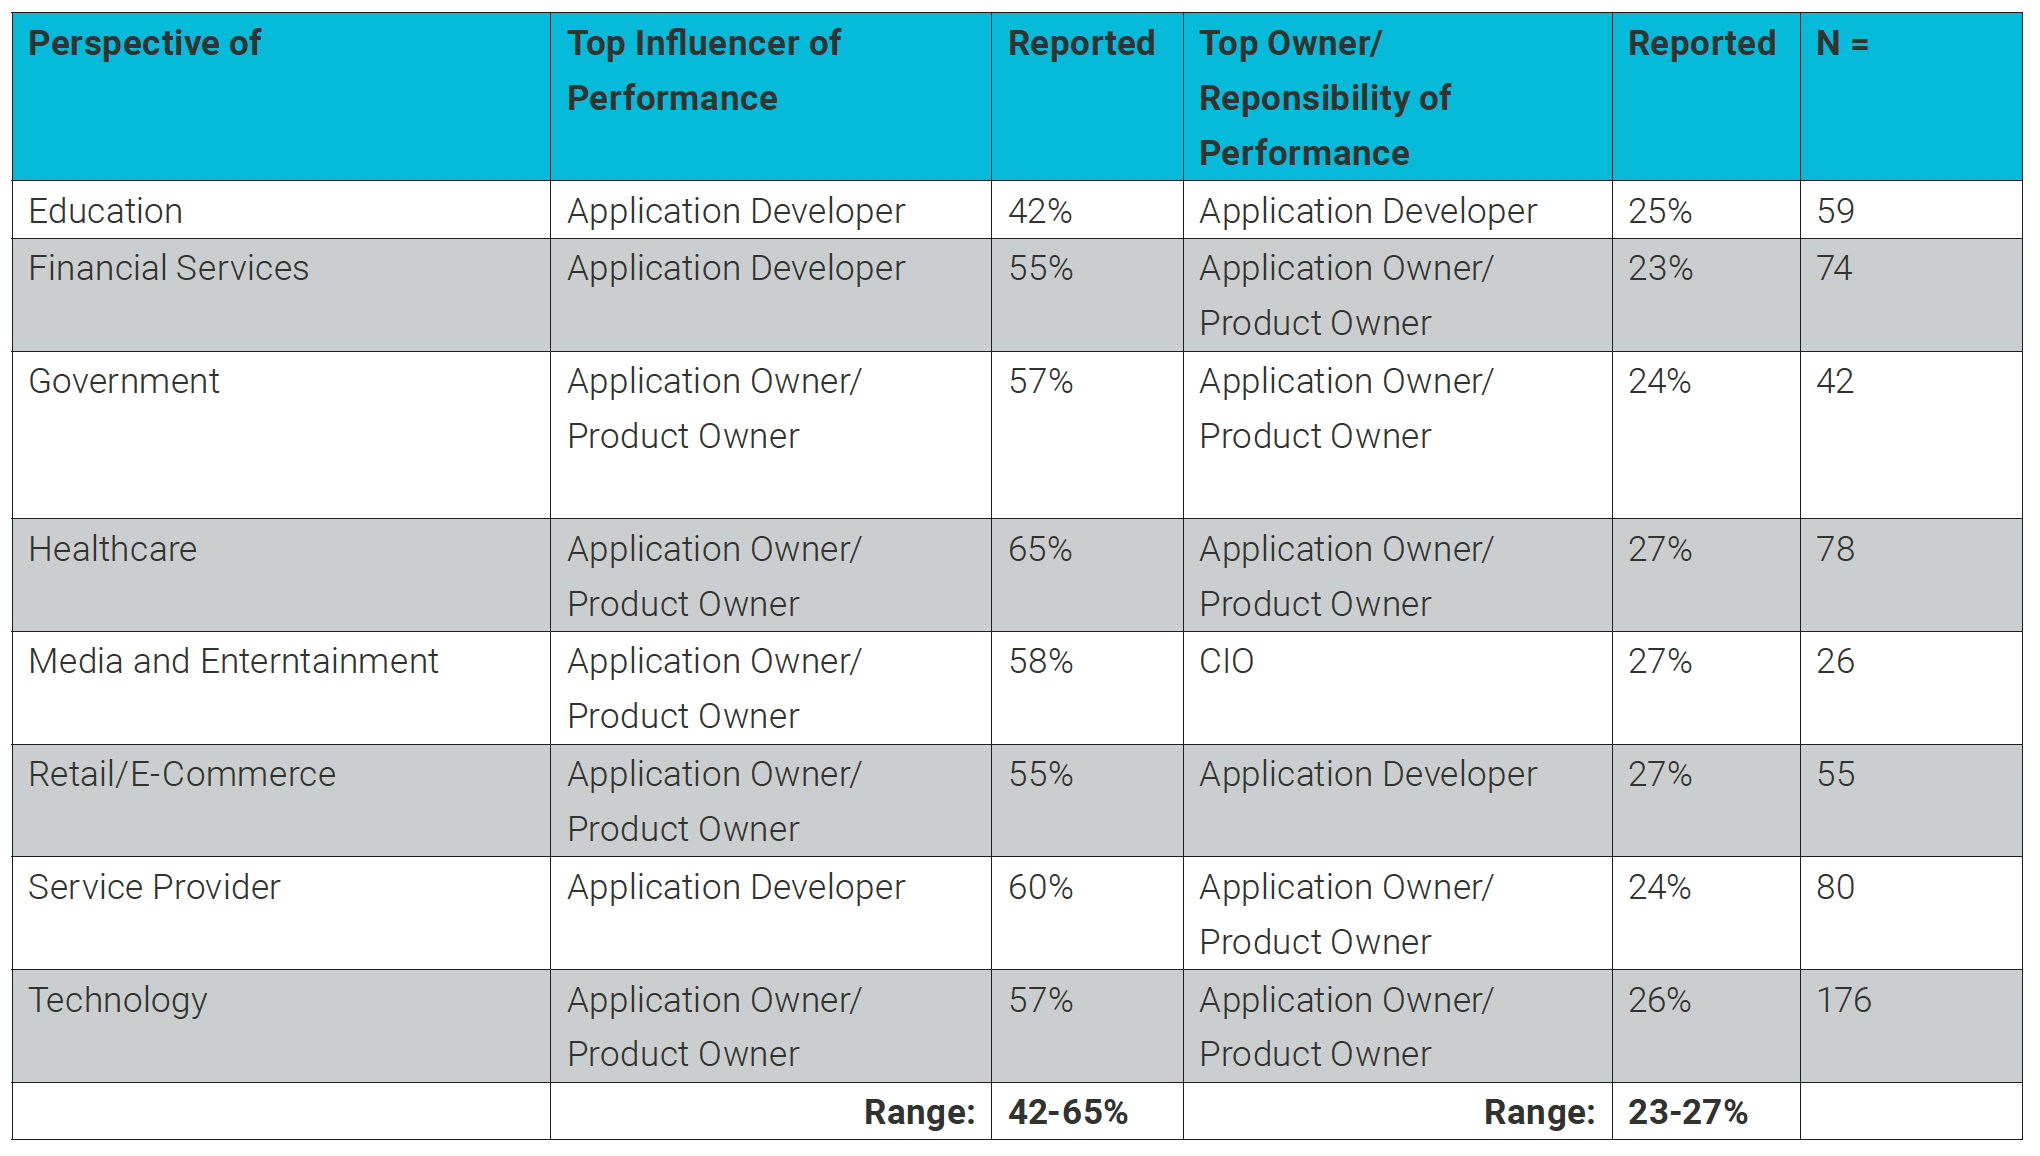 Turbonomic_2019-State-of-Performance-in-Modern-Applications_influence-vs.responsible-for-app-performance_by-industry